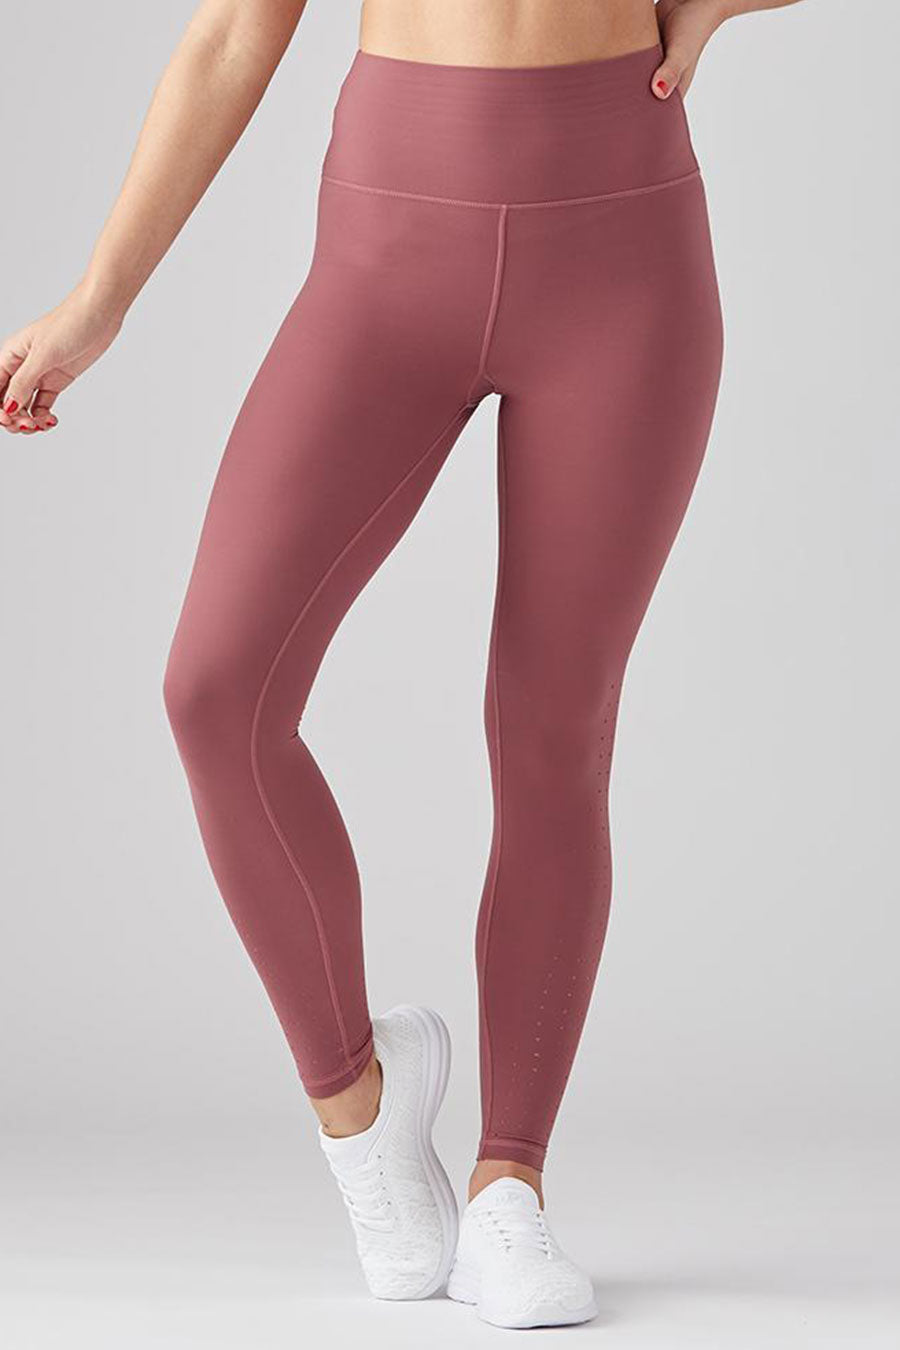 Glyder Amp Legging - Sculptique